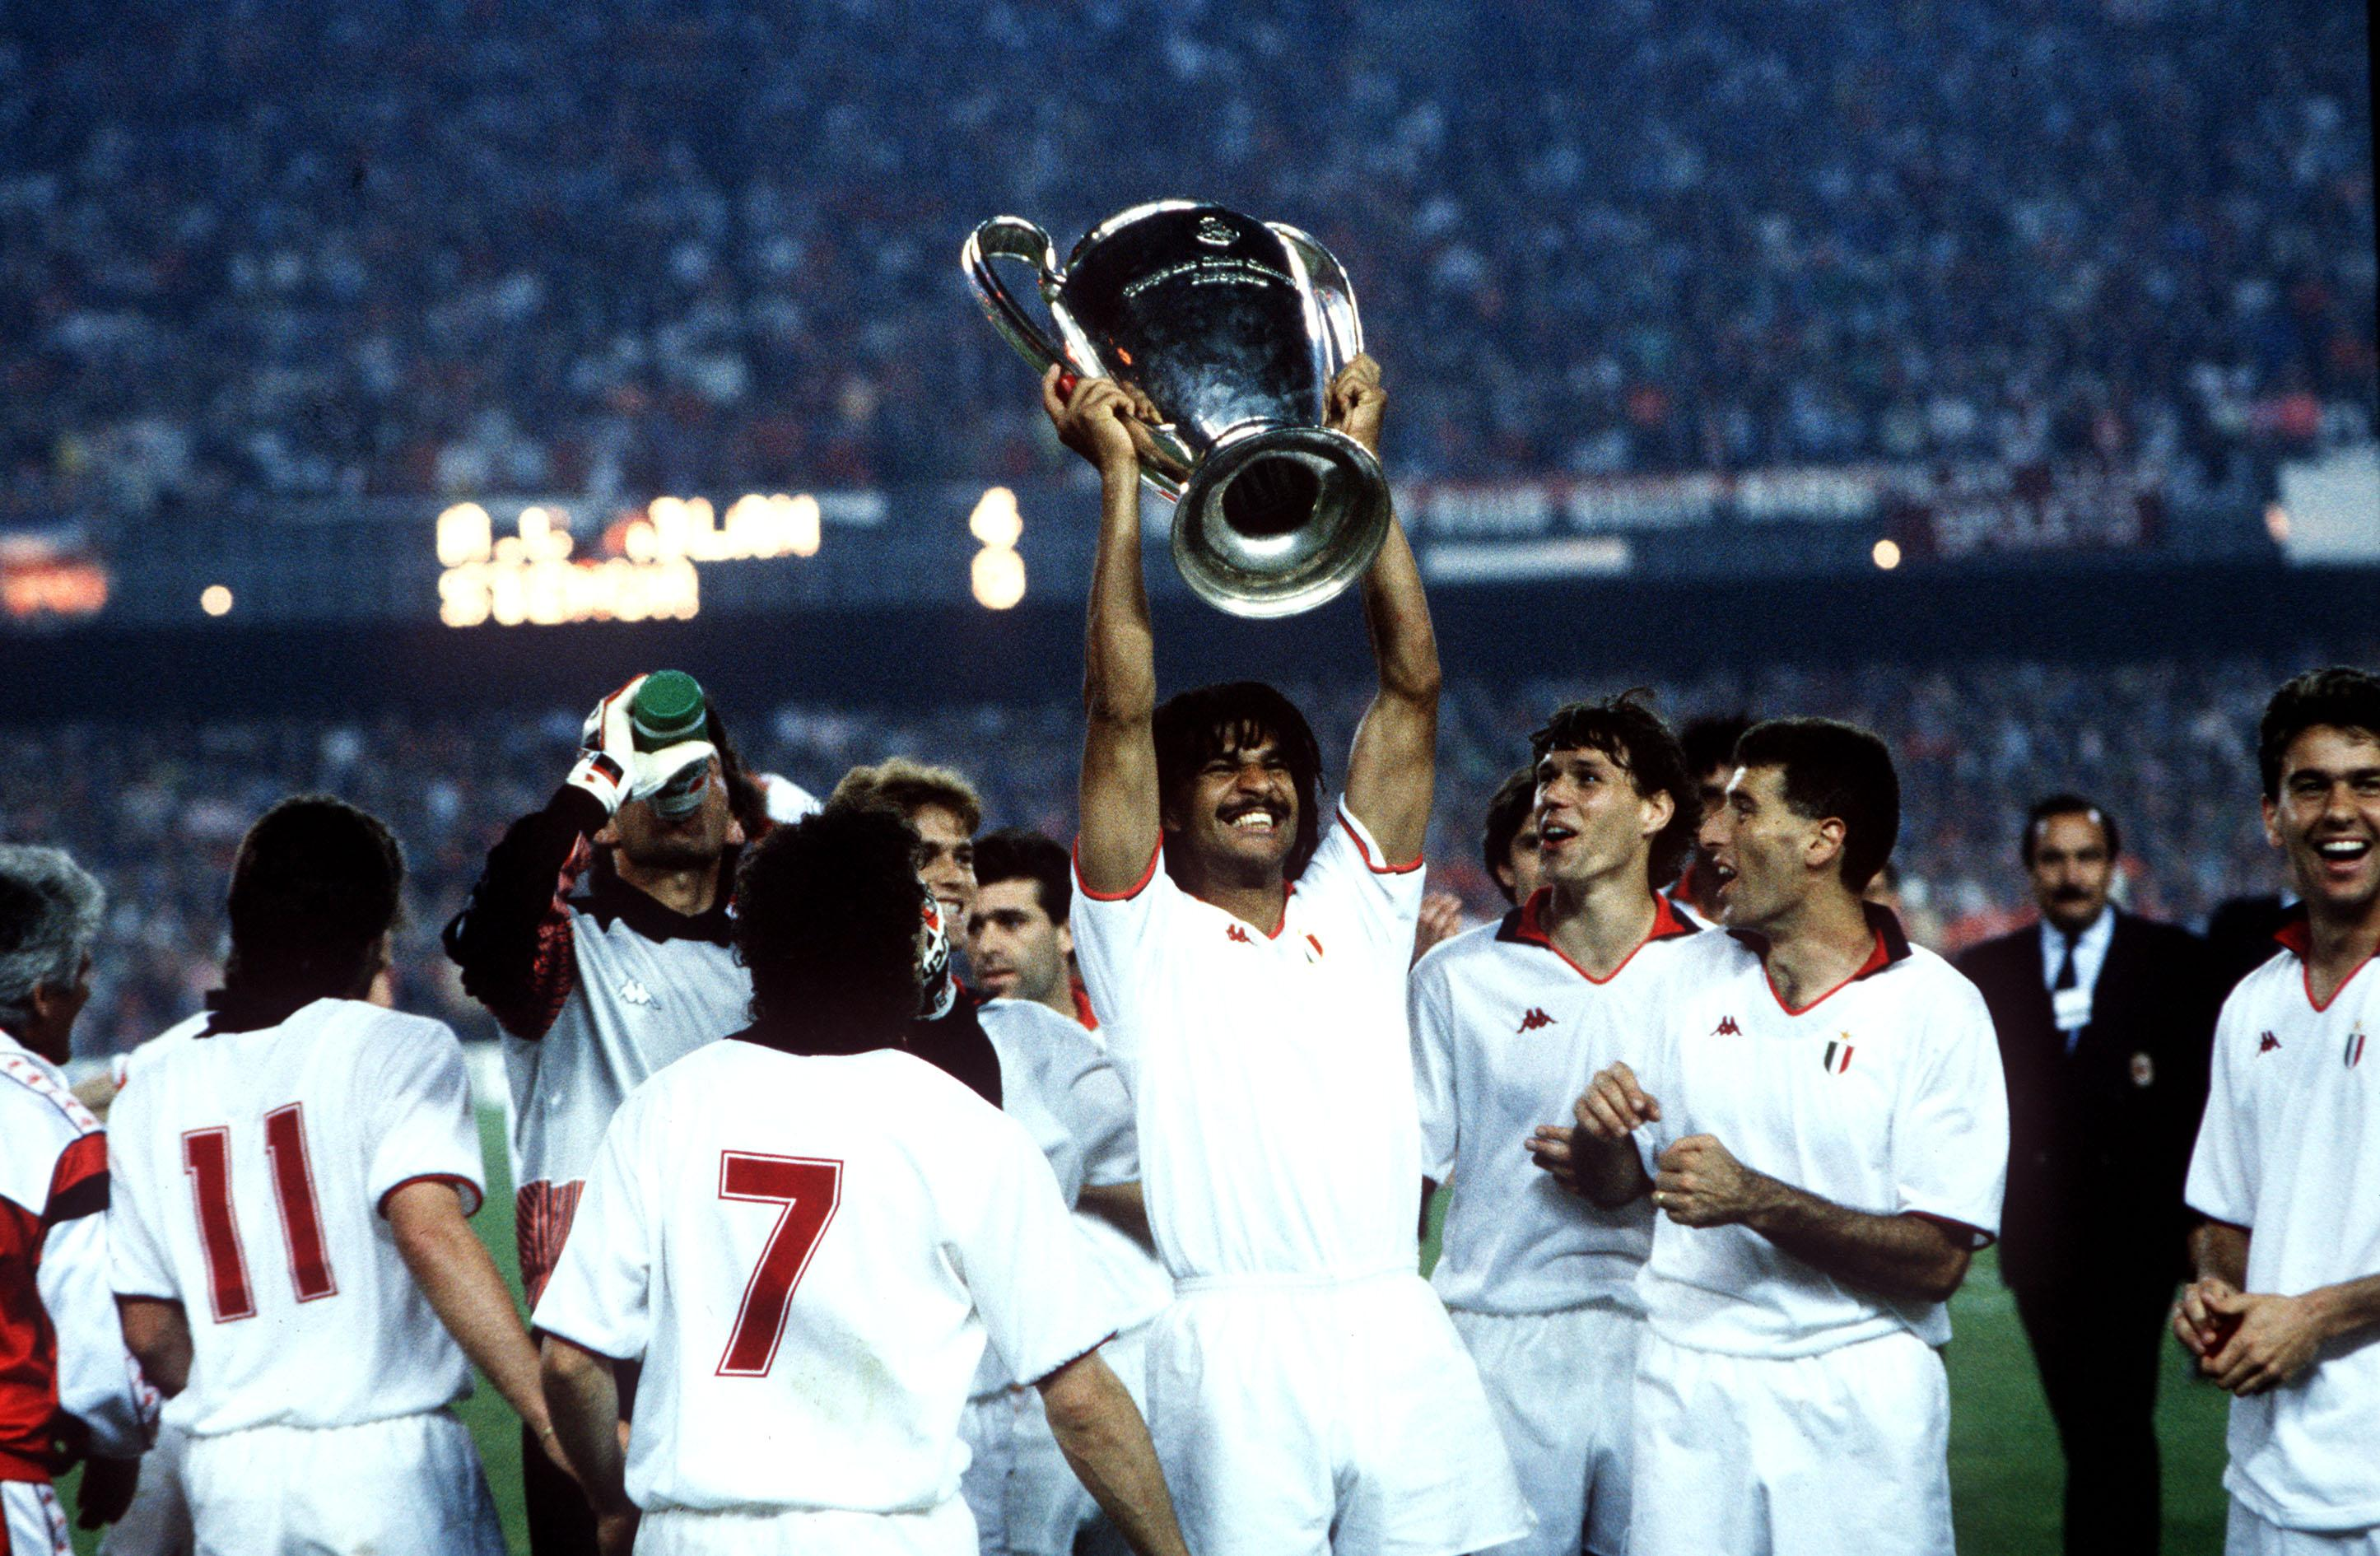 Gullit was a crucial part of the dominant AC Milan side that won three Serie A titles and two European Cups